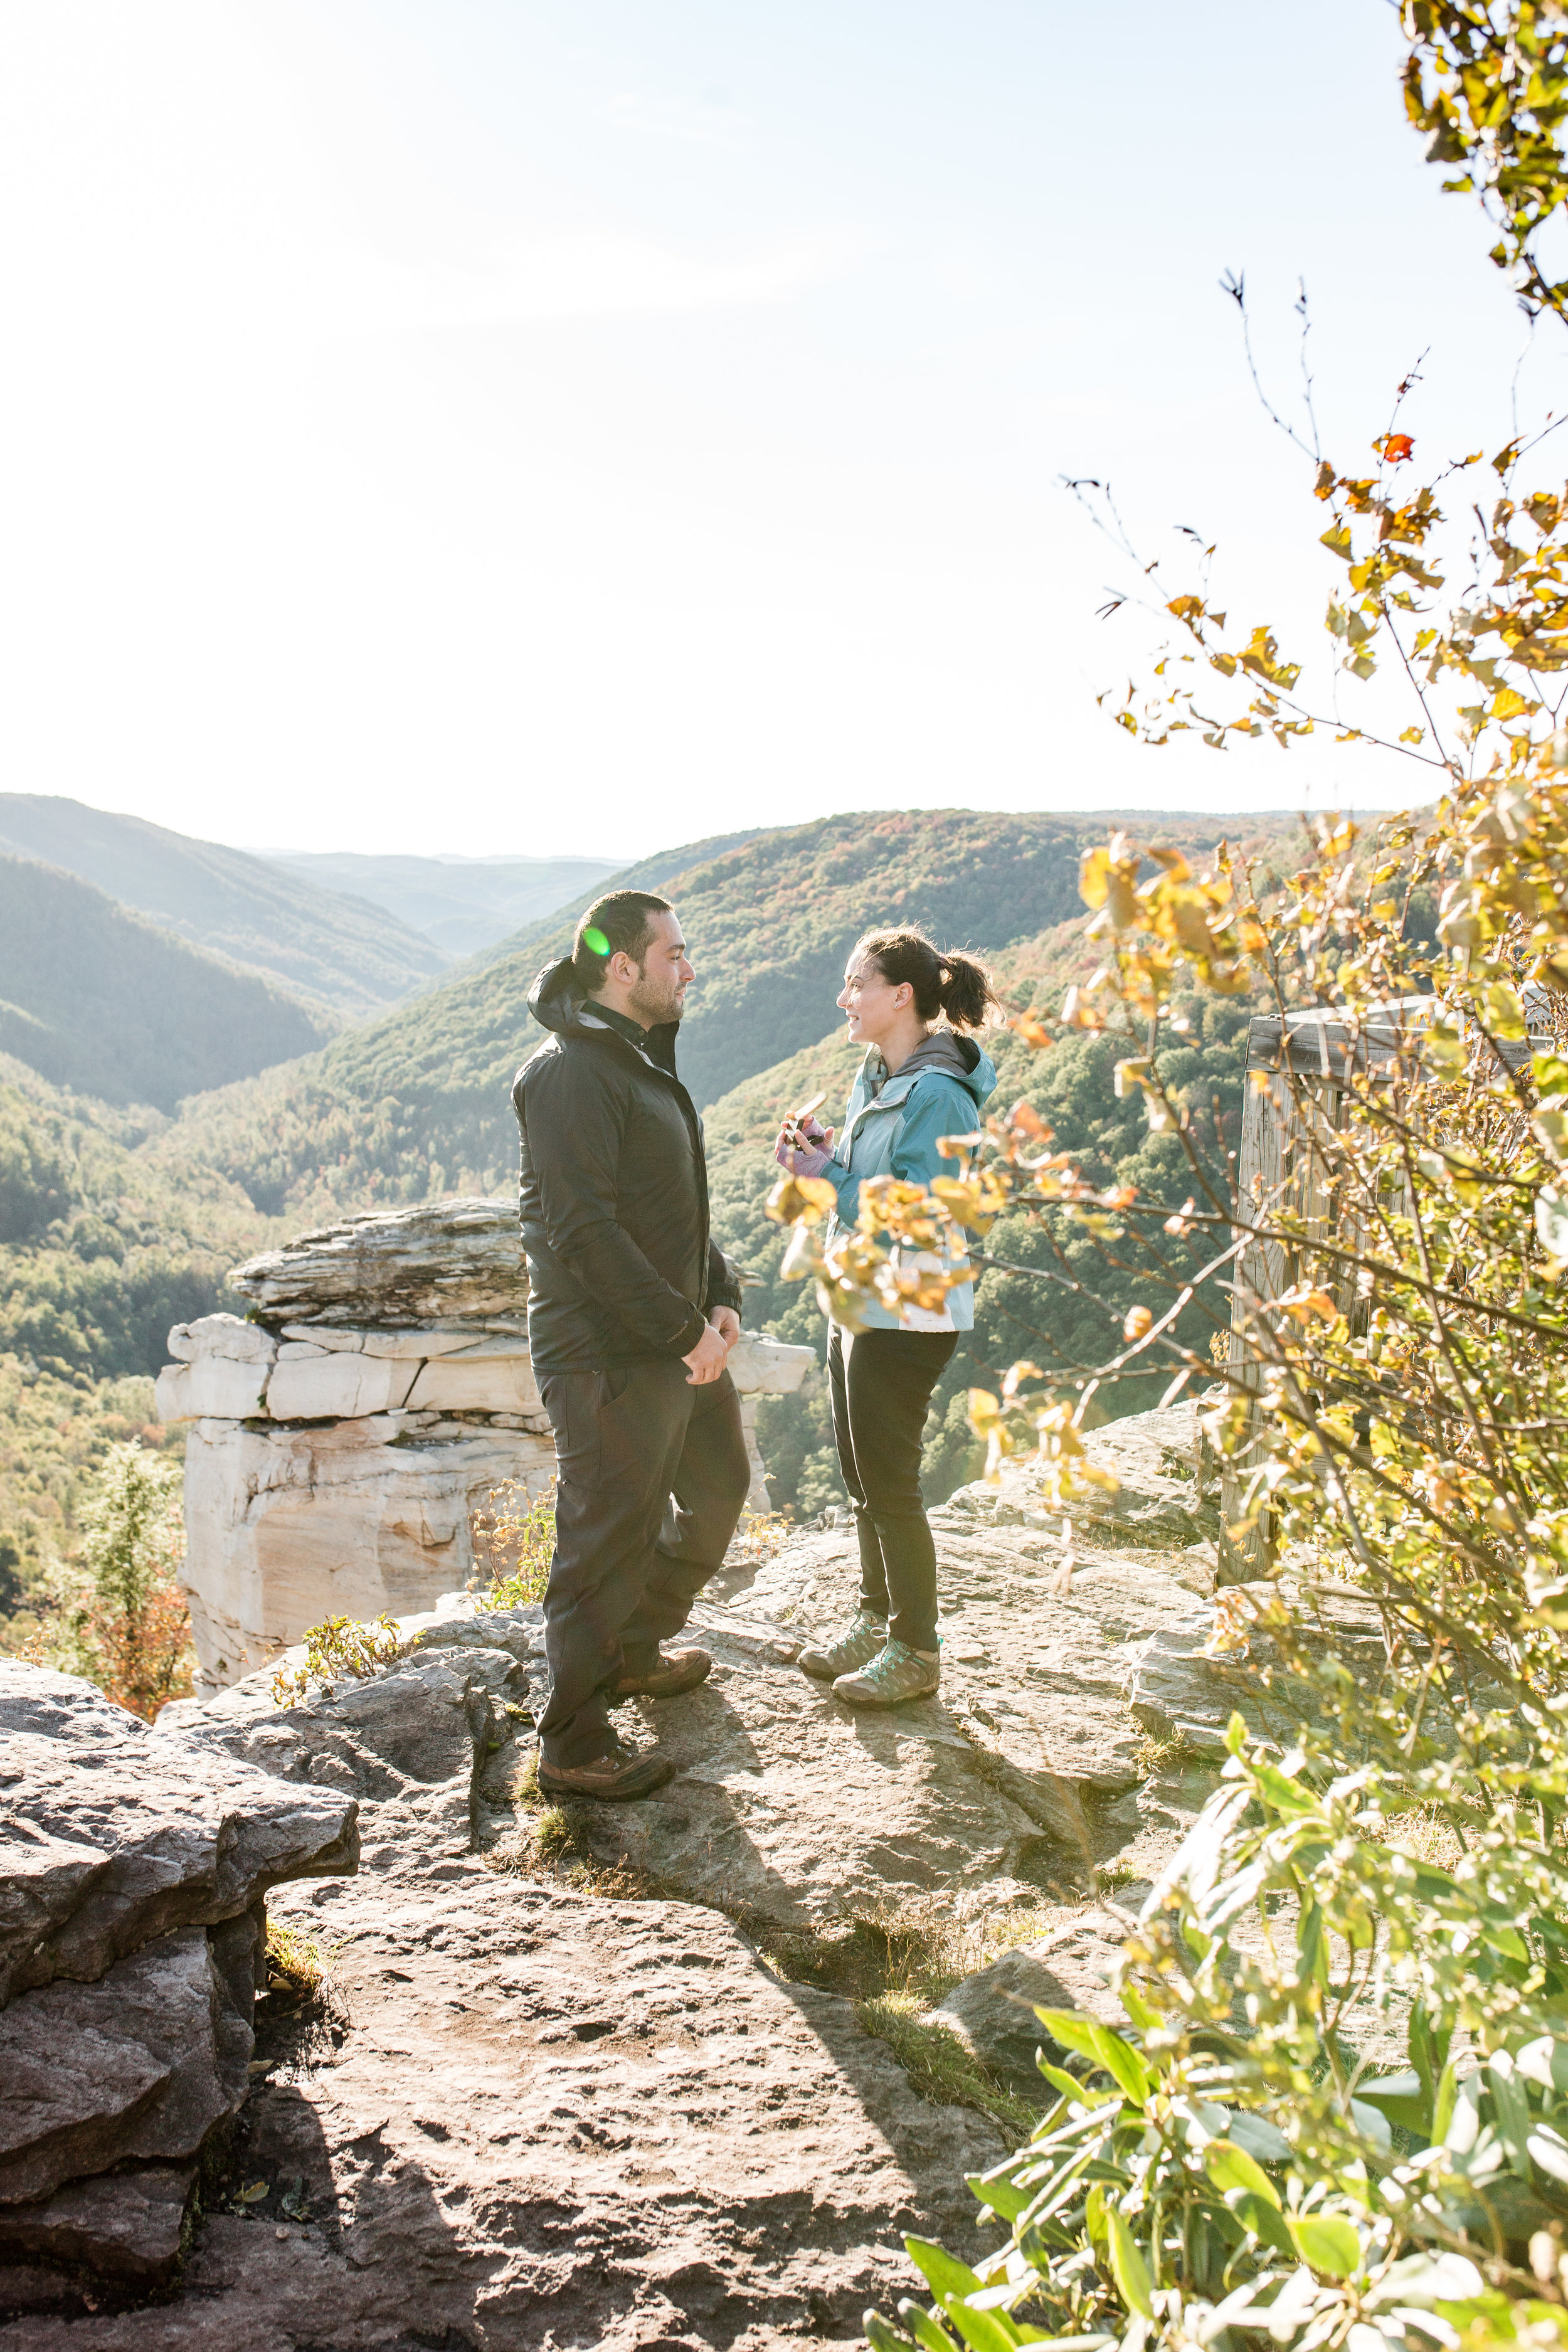 Conrad and Nicole, wv proposal lindy point blackwater falls-13.jpg